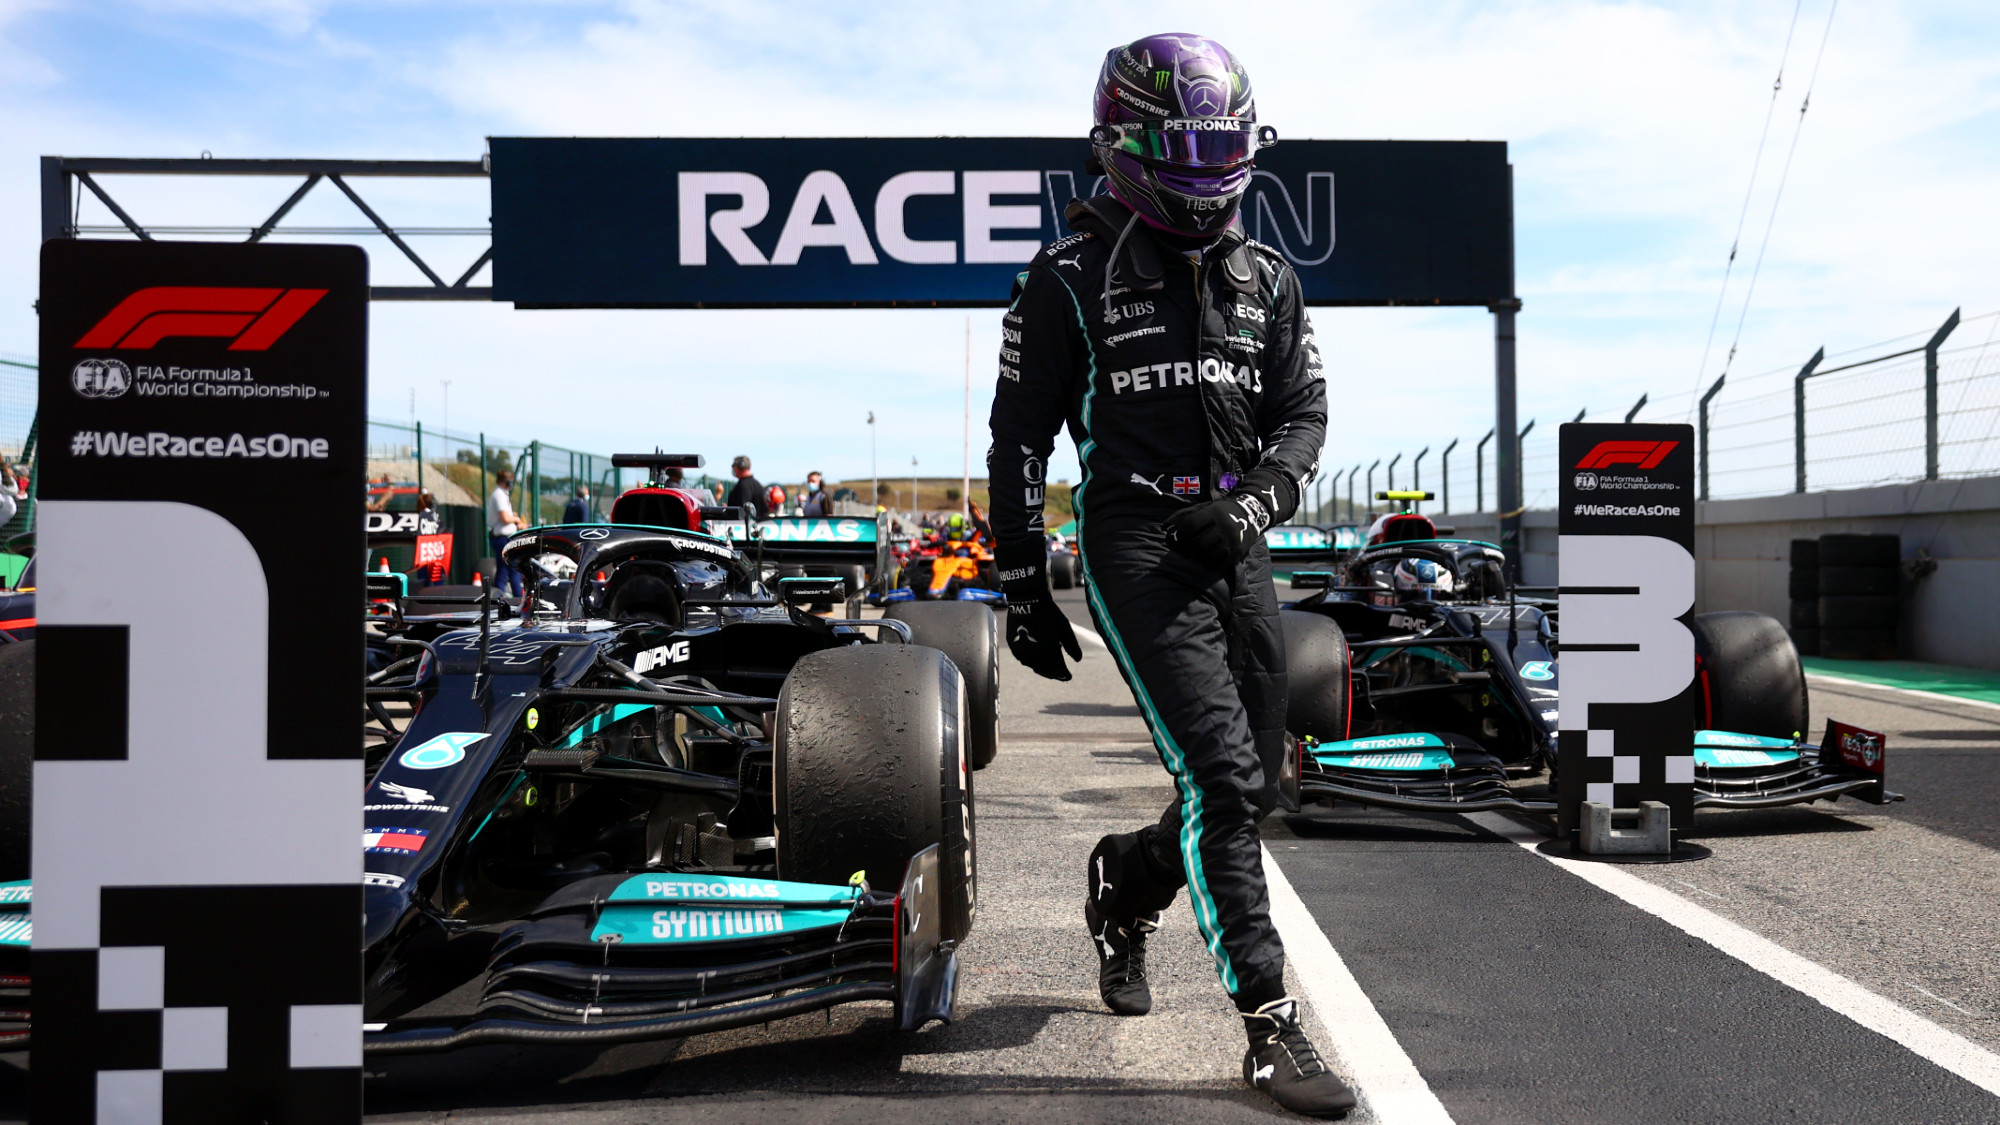 Like it or not, Hamilton is on course to be a Formula 1 legend